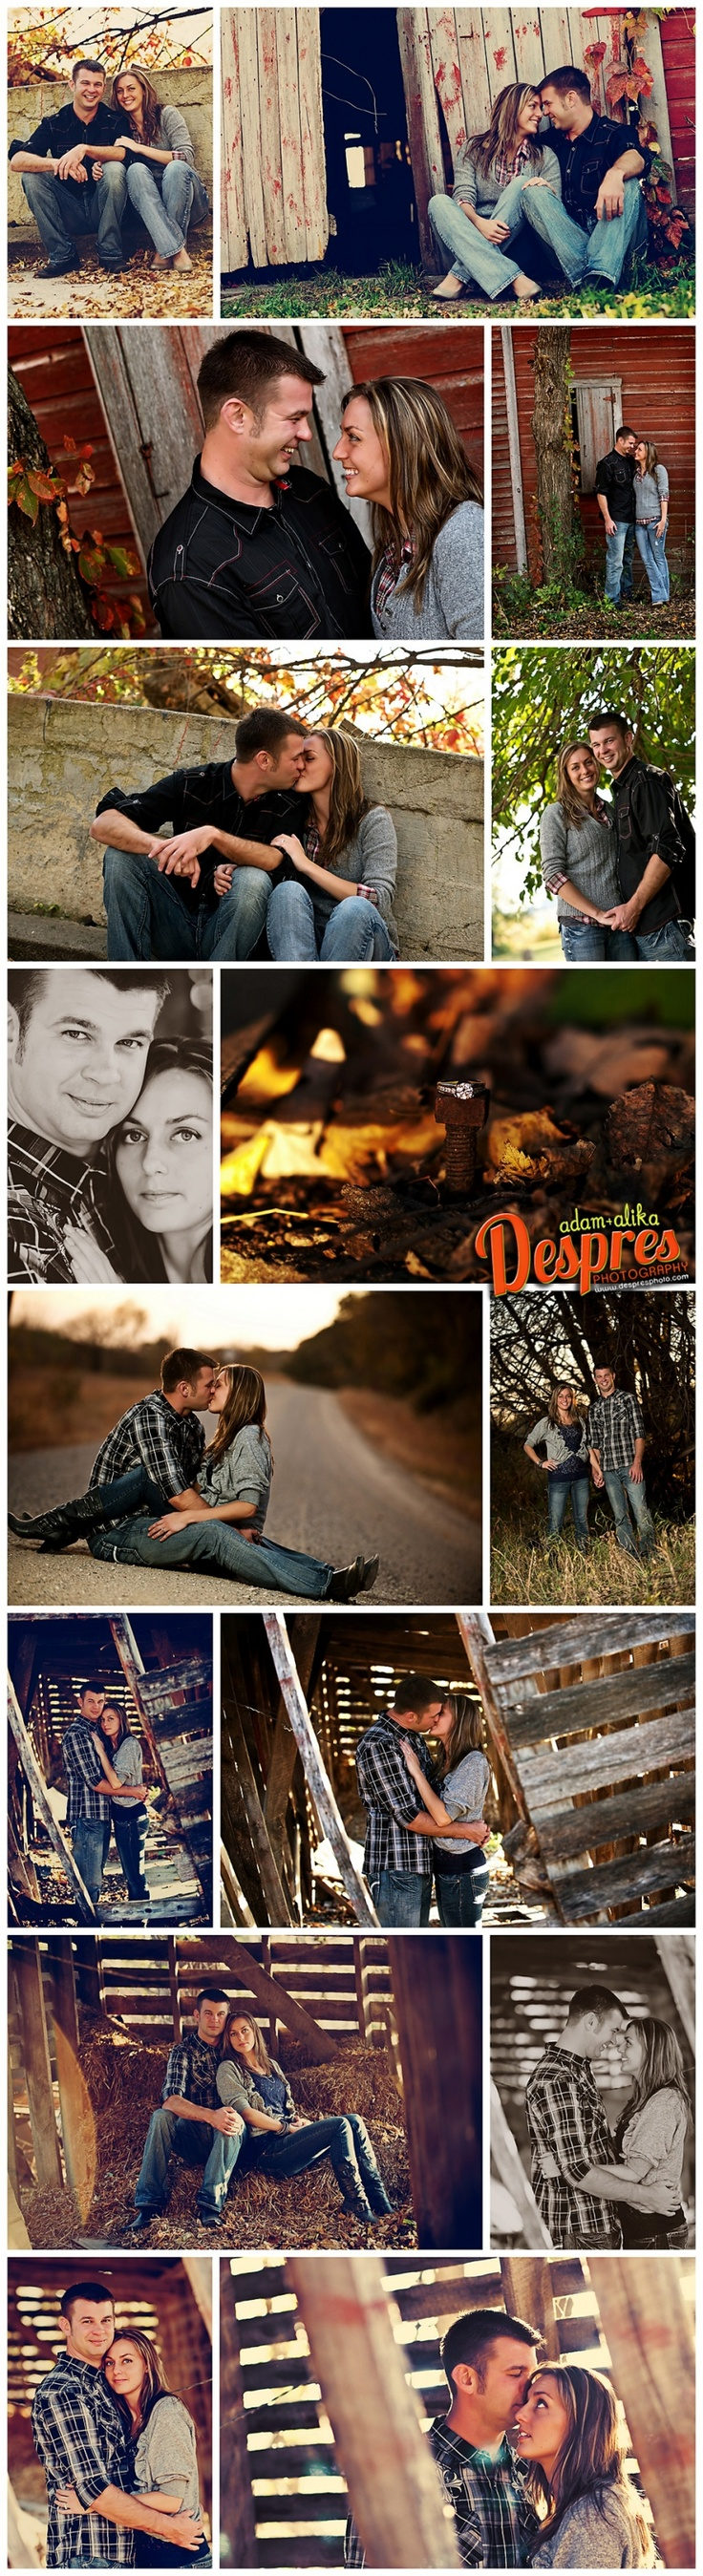 Engagement Pose Ideas - Like the ones in the abandoned buildings/barns